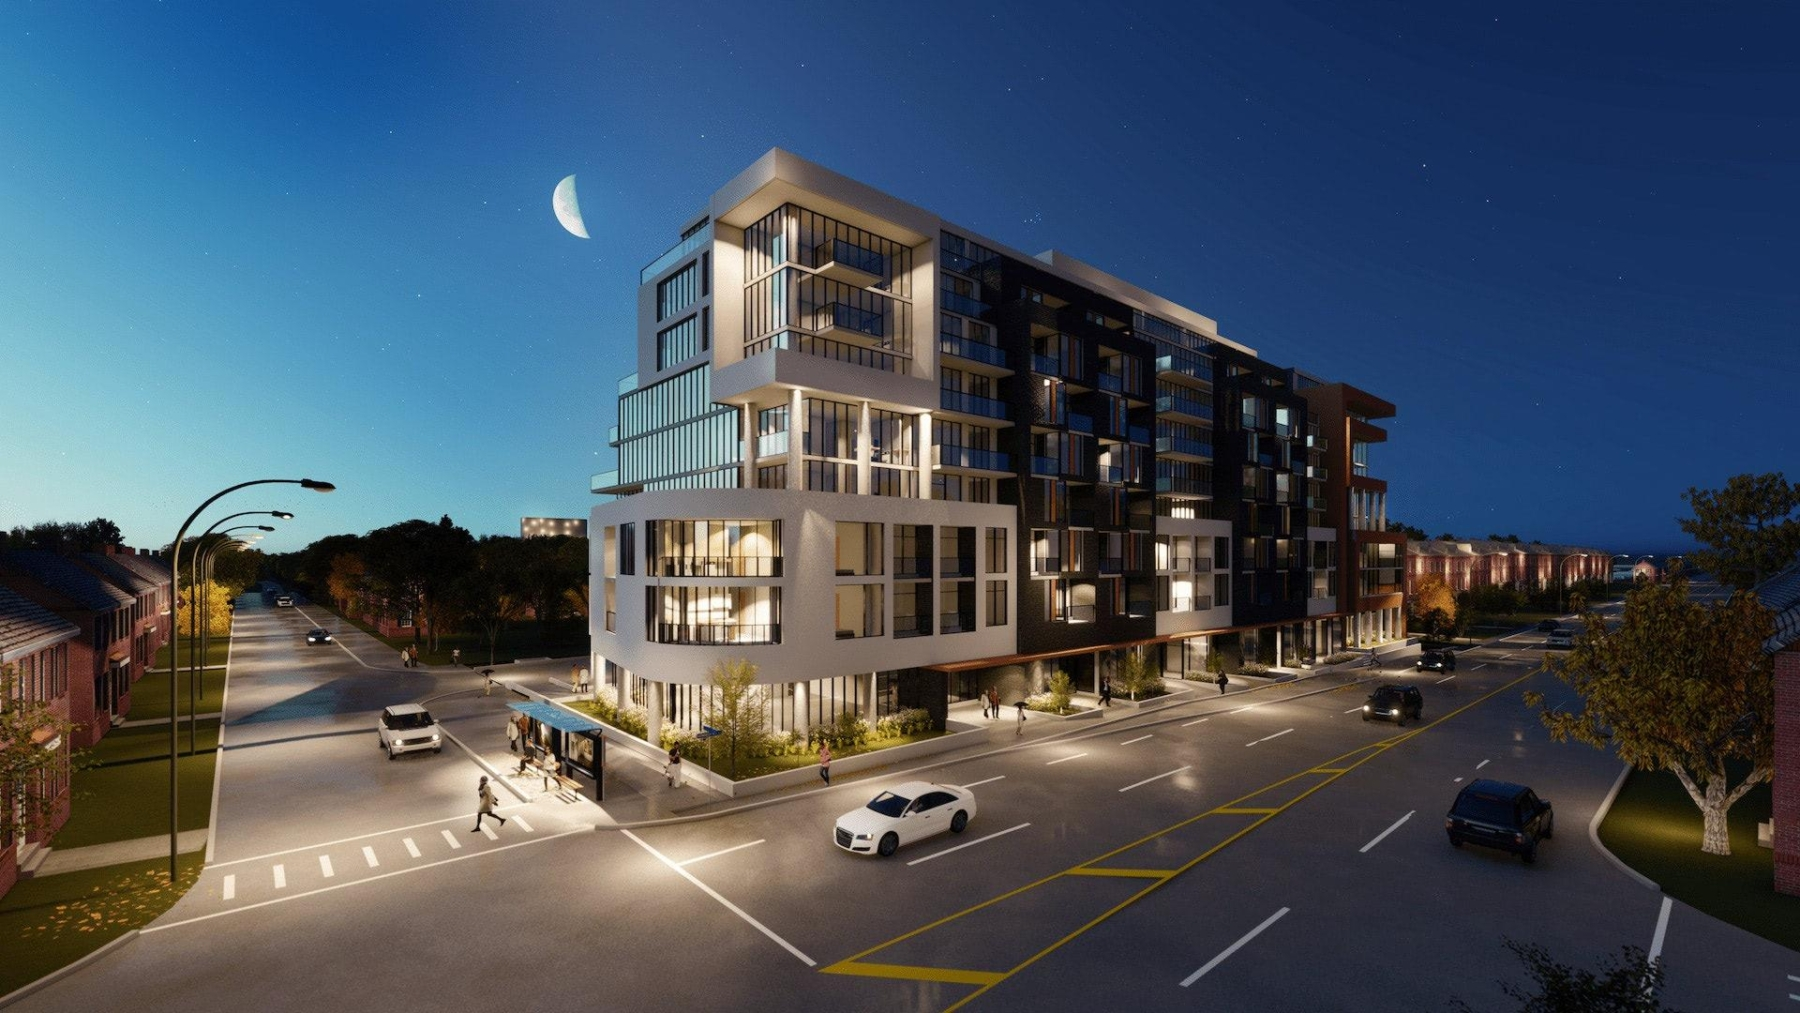 Rendering of Nahid Kennedy Condos night